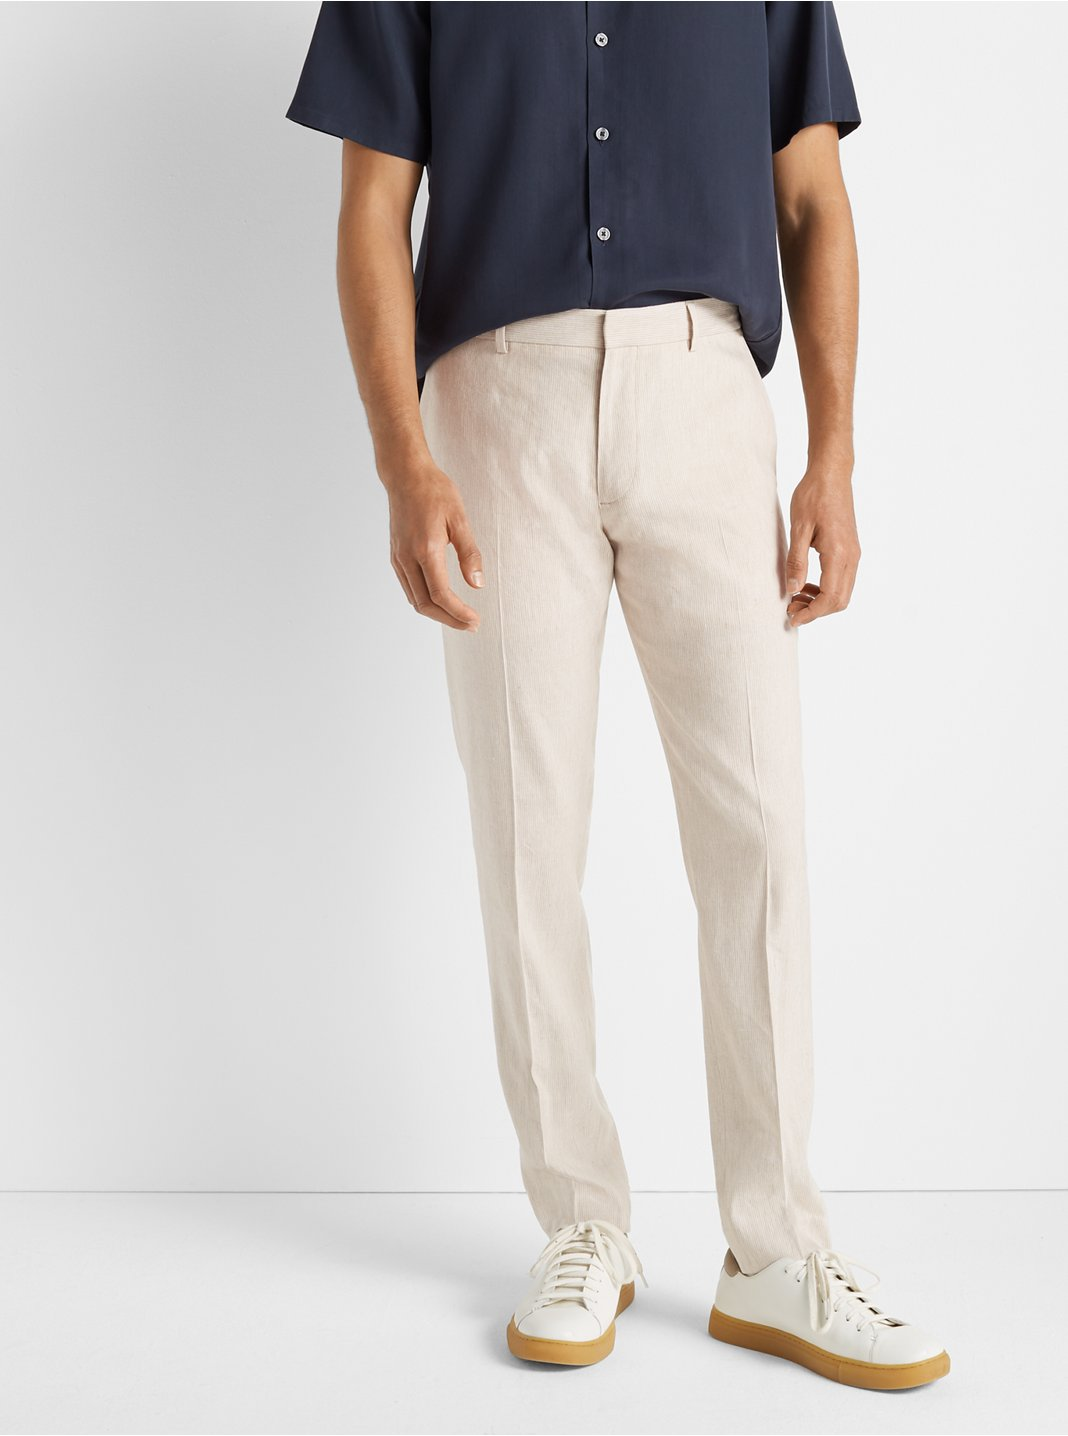 Sutton Thin Stripe Trouser